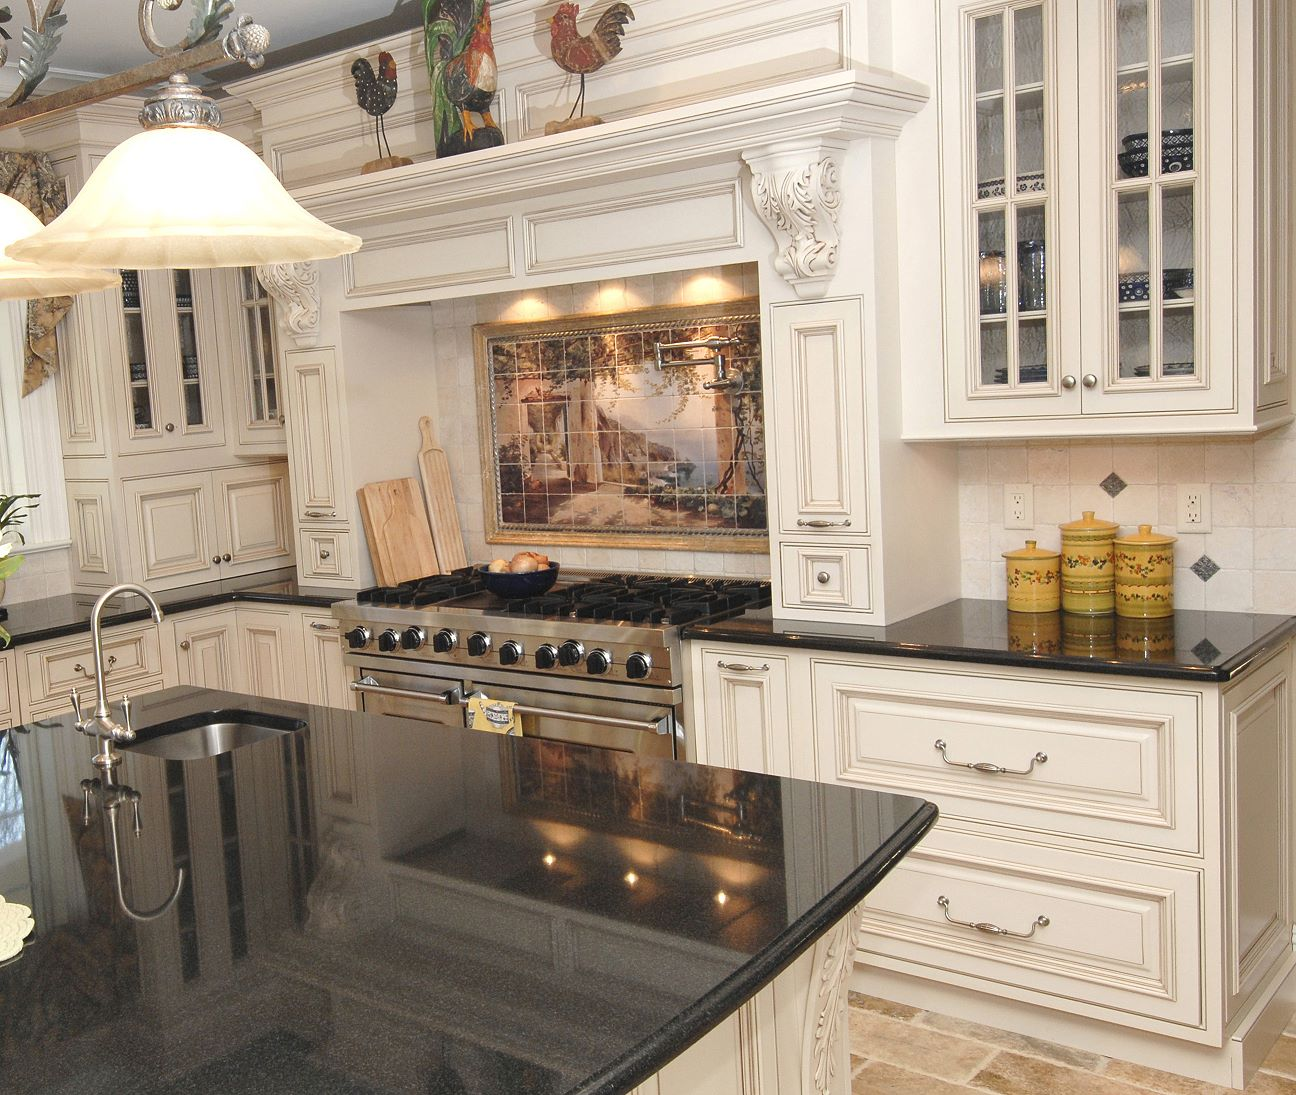 25 traditional kitchen designs for a royal look for Small kitchen designs 2015